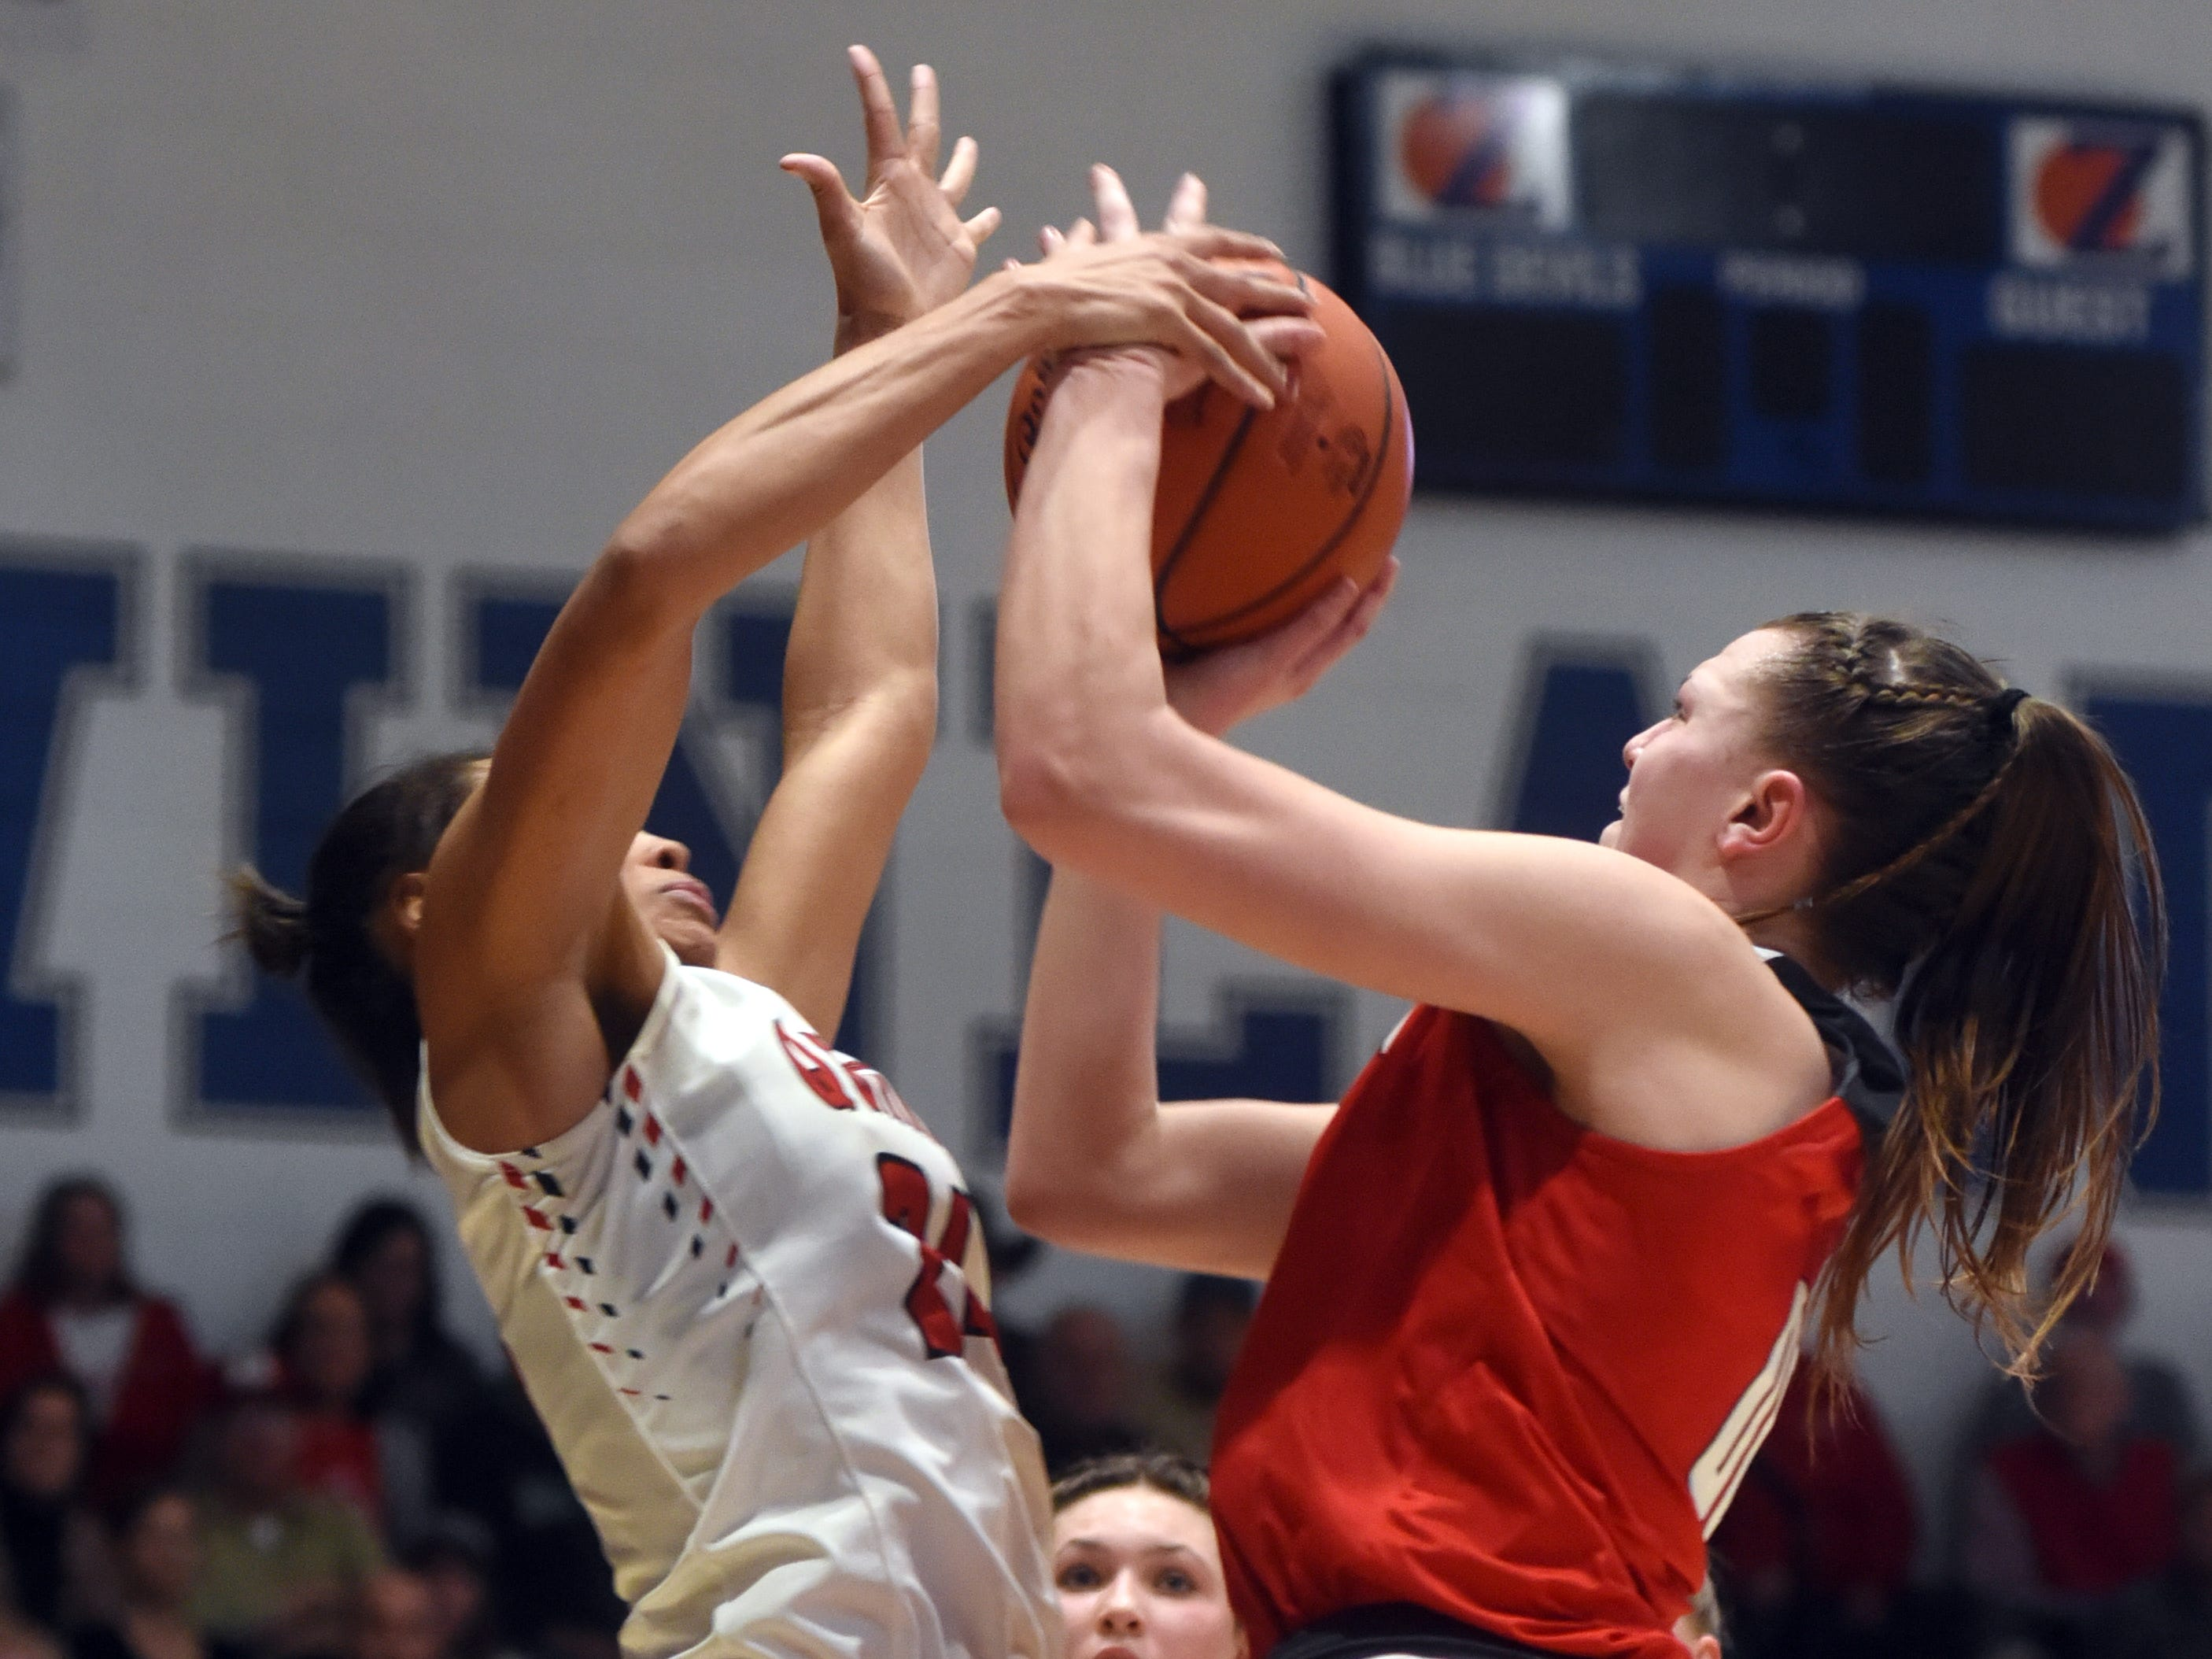 Faith Stinson, of Sheridan, is blocked during a shot in the lane against New Philadelphia's Aaliyah Currence during a Division II regional final at Winland Memorial Gymnasium. The Generals reached their first state tournament since 2004 with a 48-46 win.